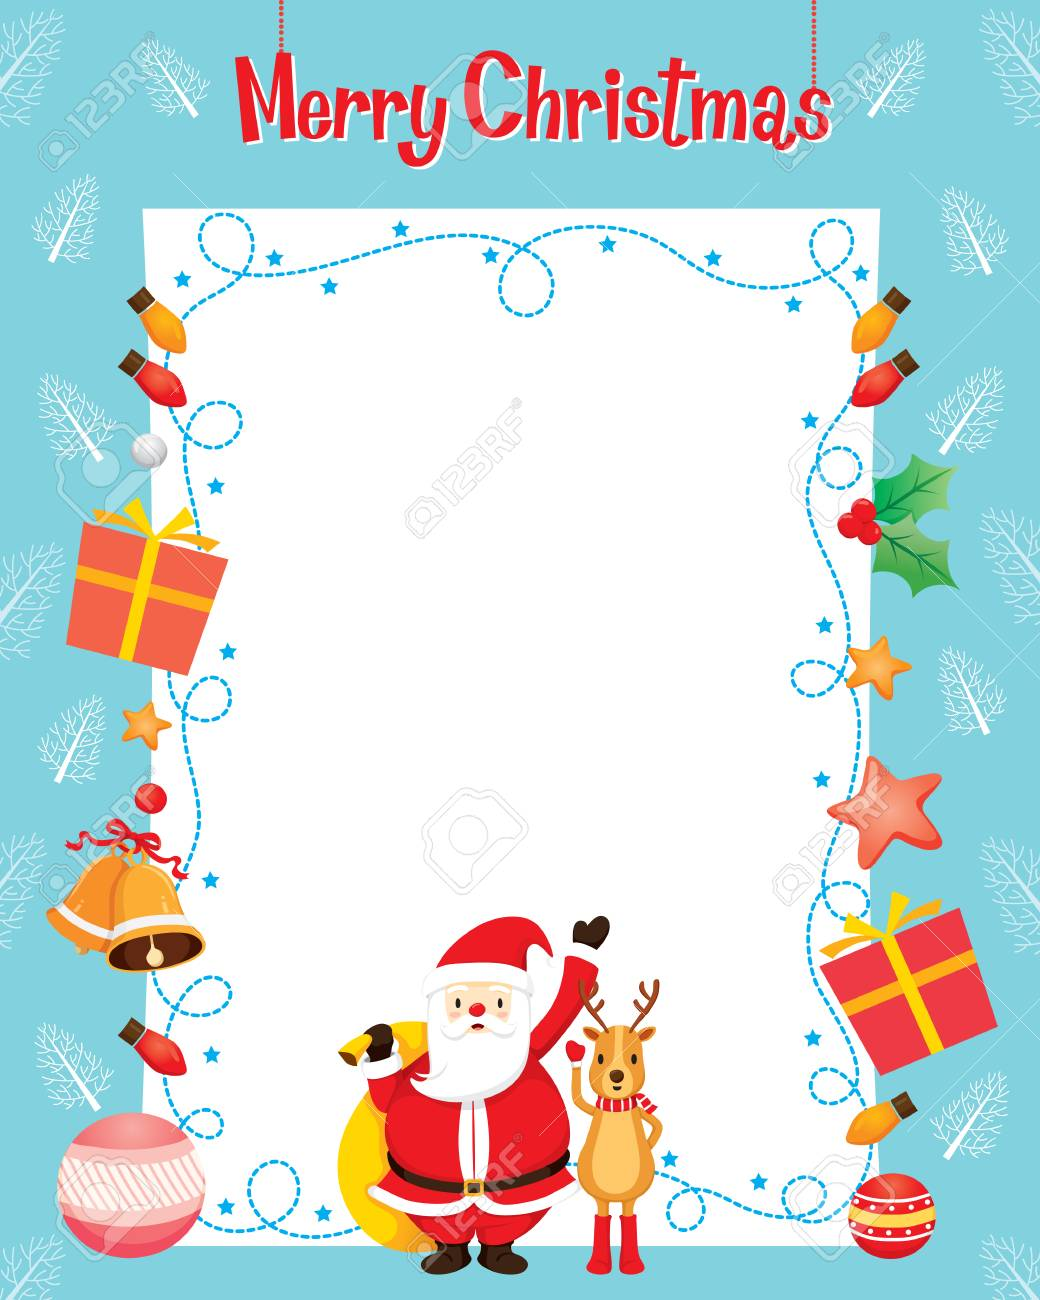 Santa And Reindeer With Christmas Ornaments Decoration Border,..